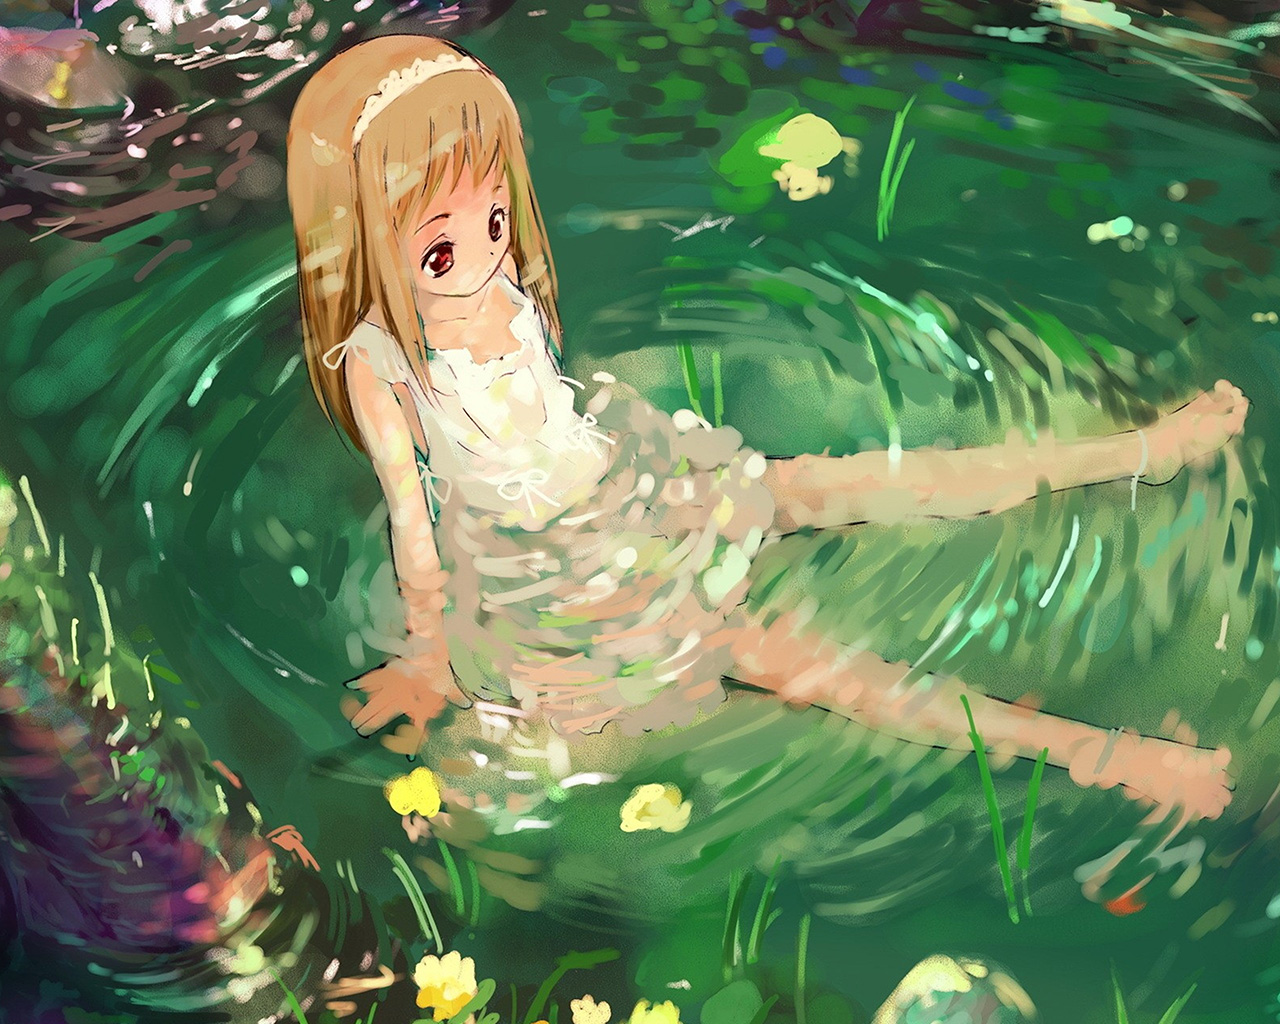 Cute Korean Girl Desktop Wallpaper Aq59 Girl Cute Anime Water Wallpaper